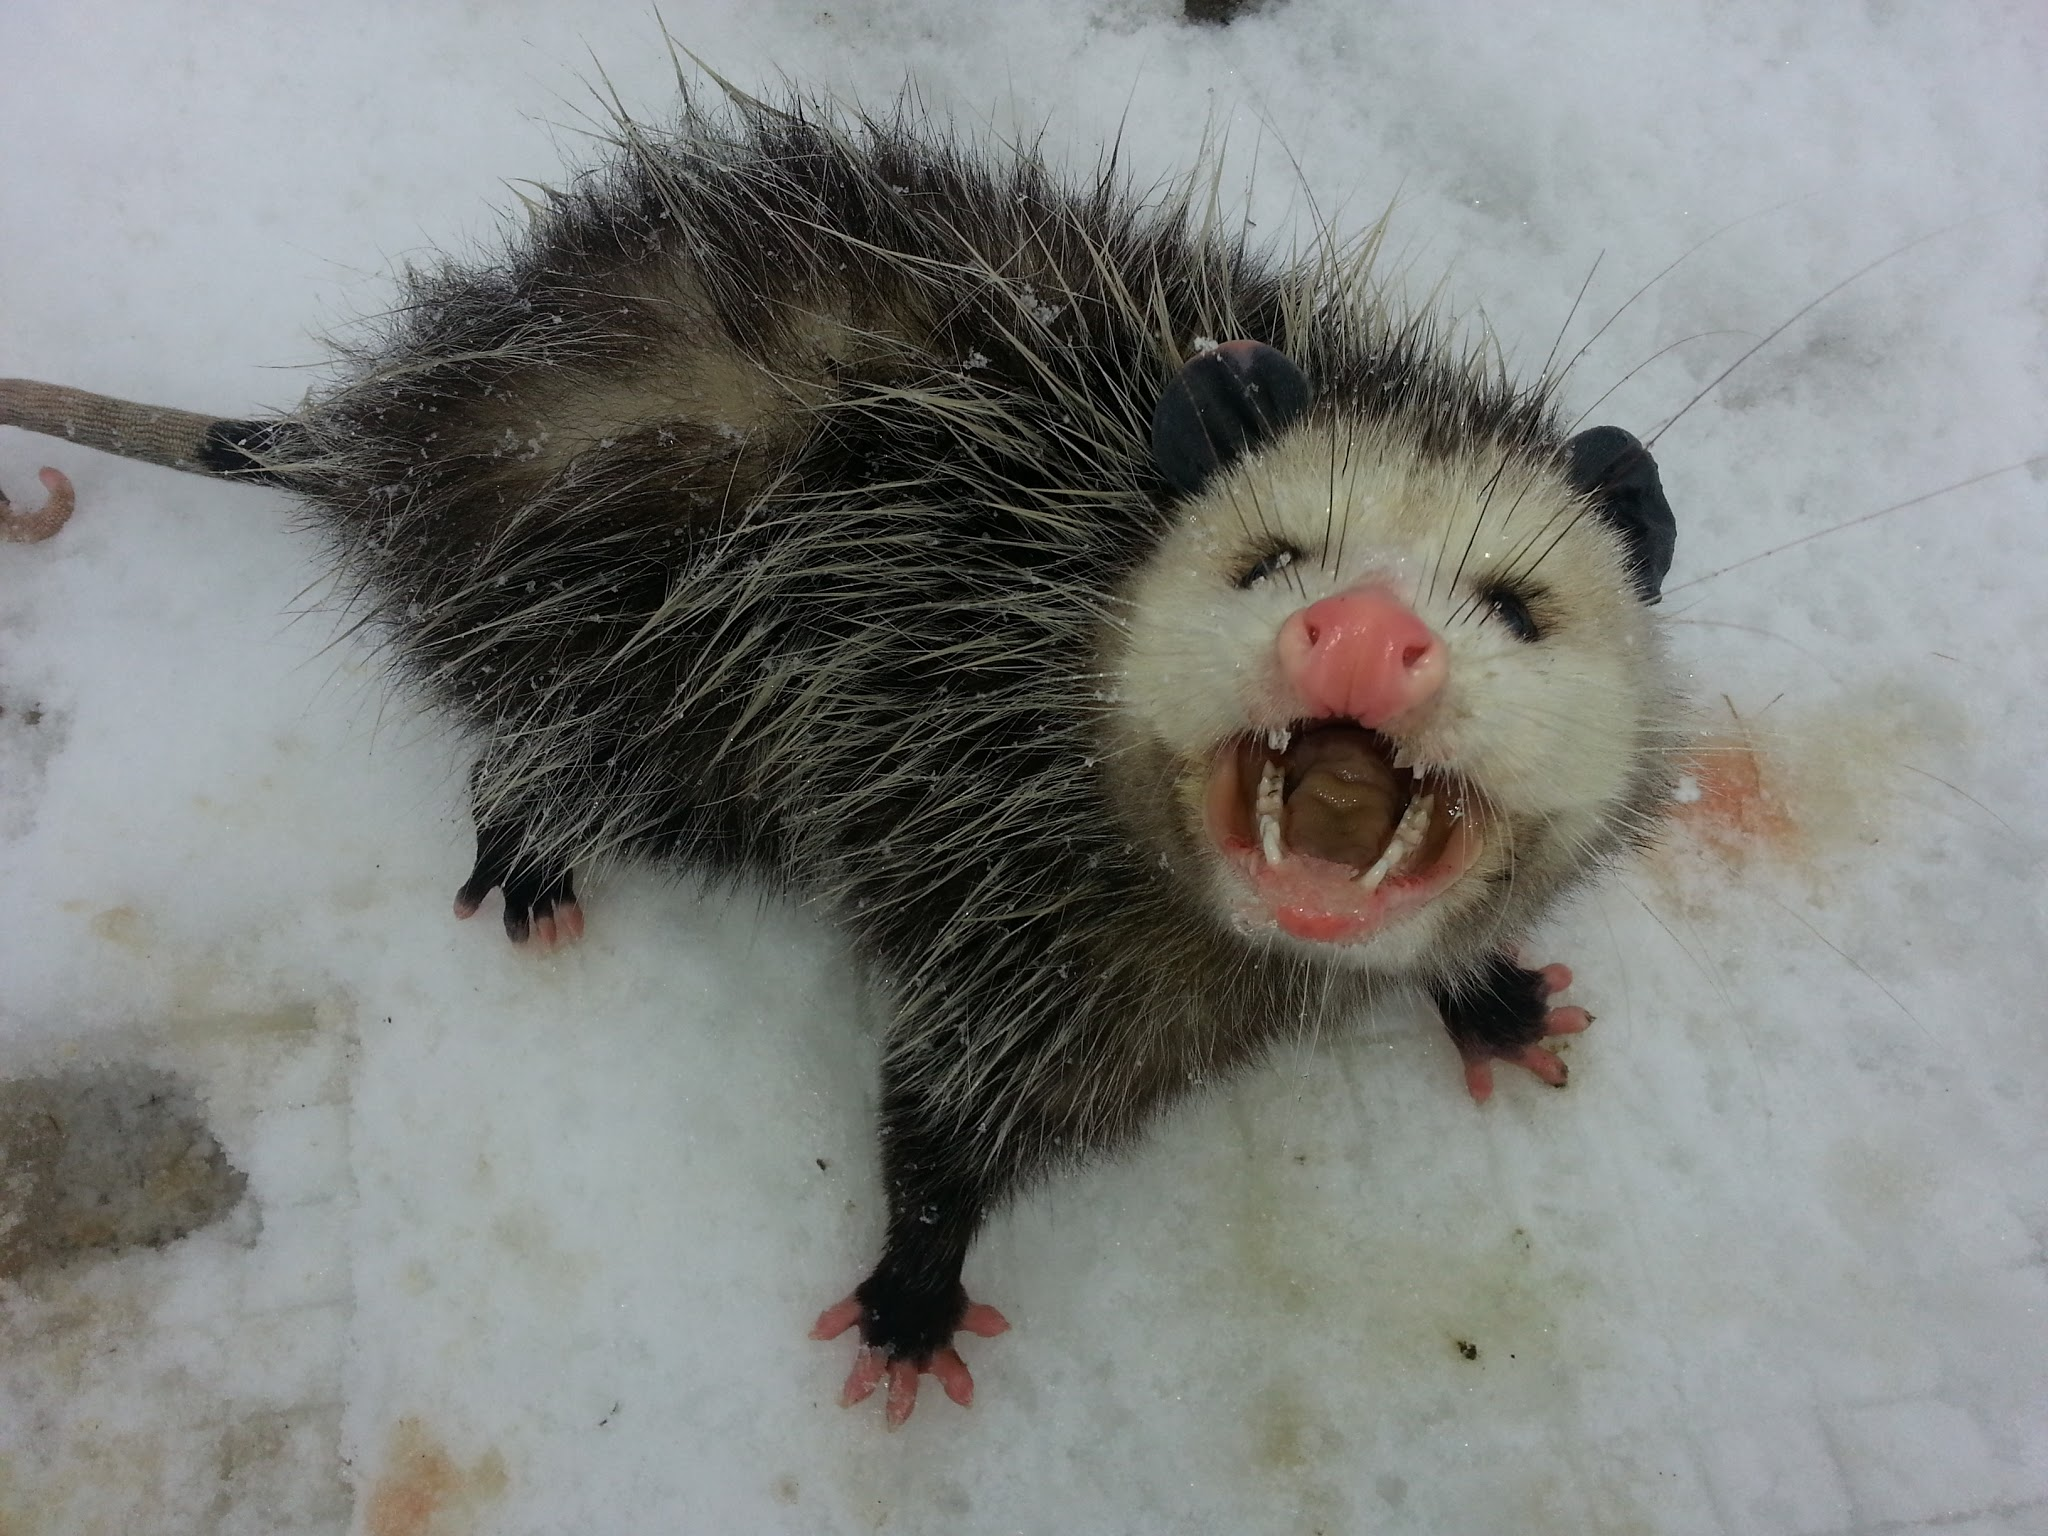 Opossums often struggle to survive harsh winters